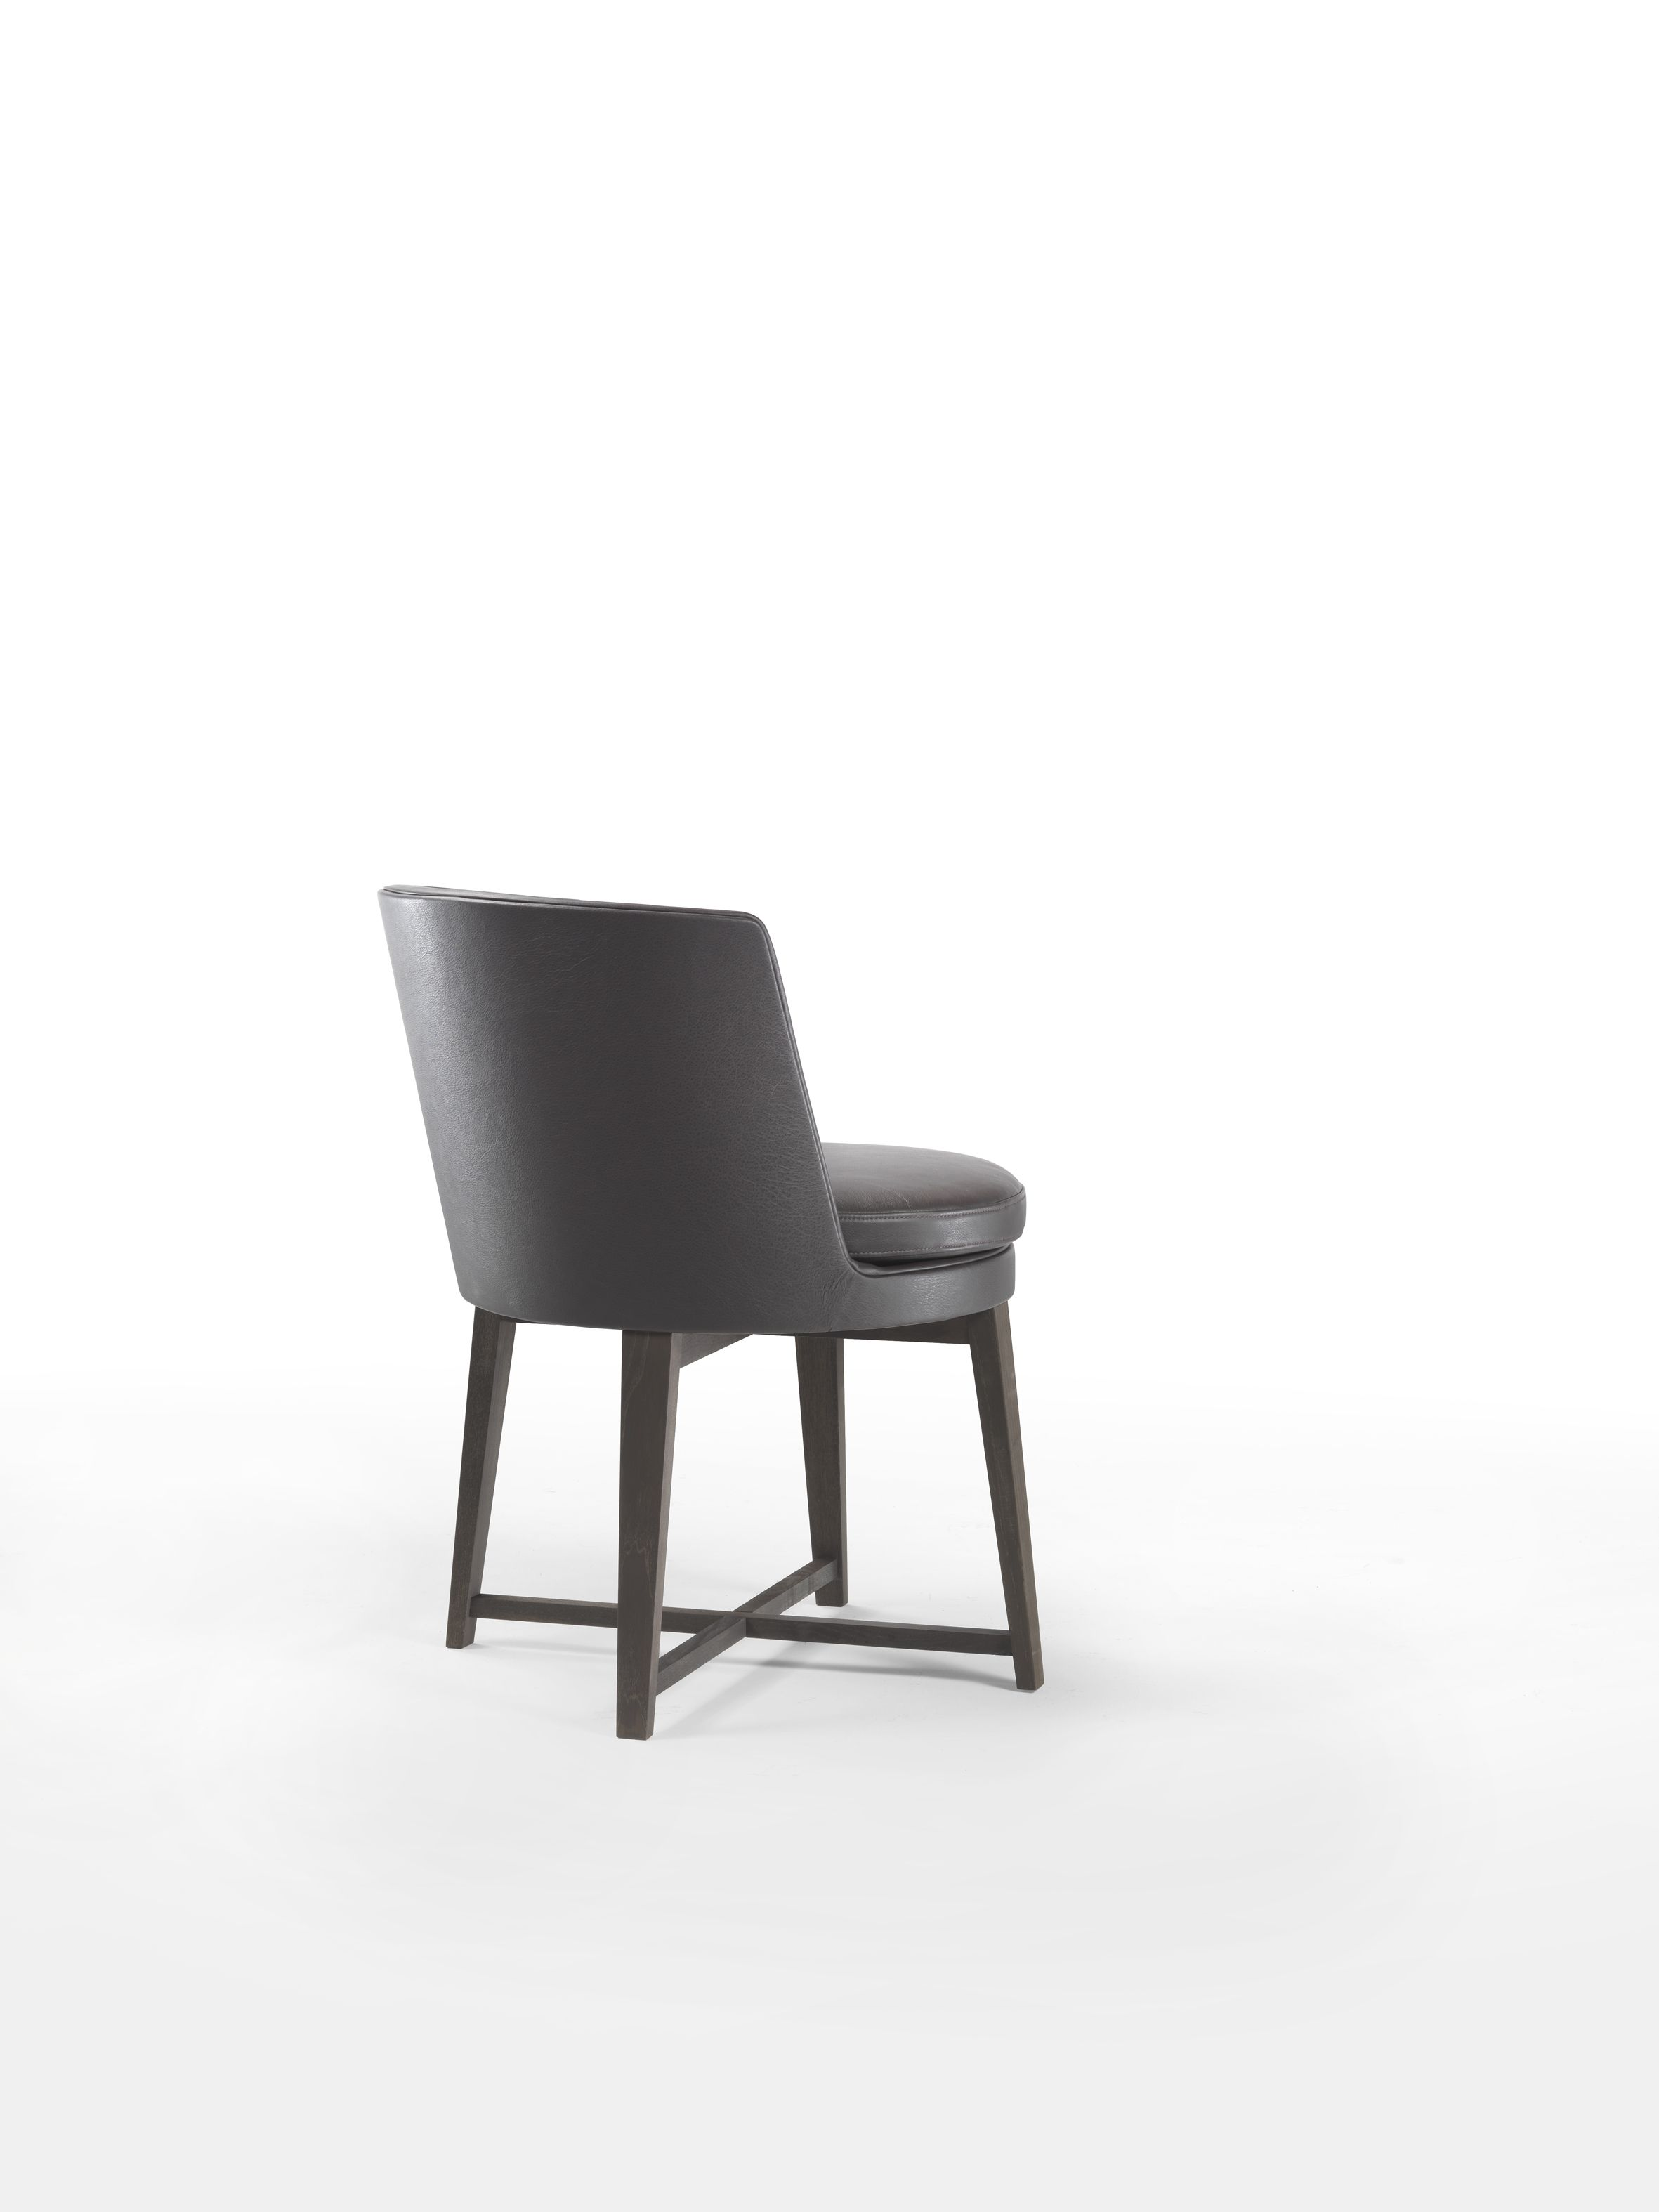 Best Flexform Feel Good Small Dining Armchair With Wooden Base 400 x 300